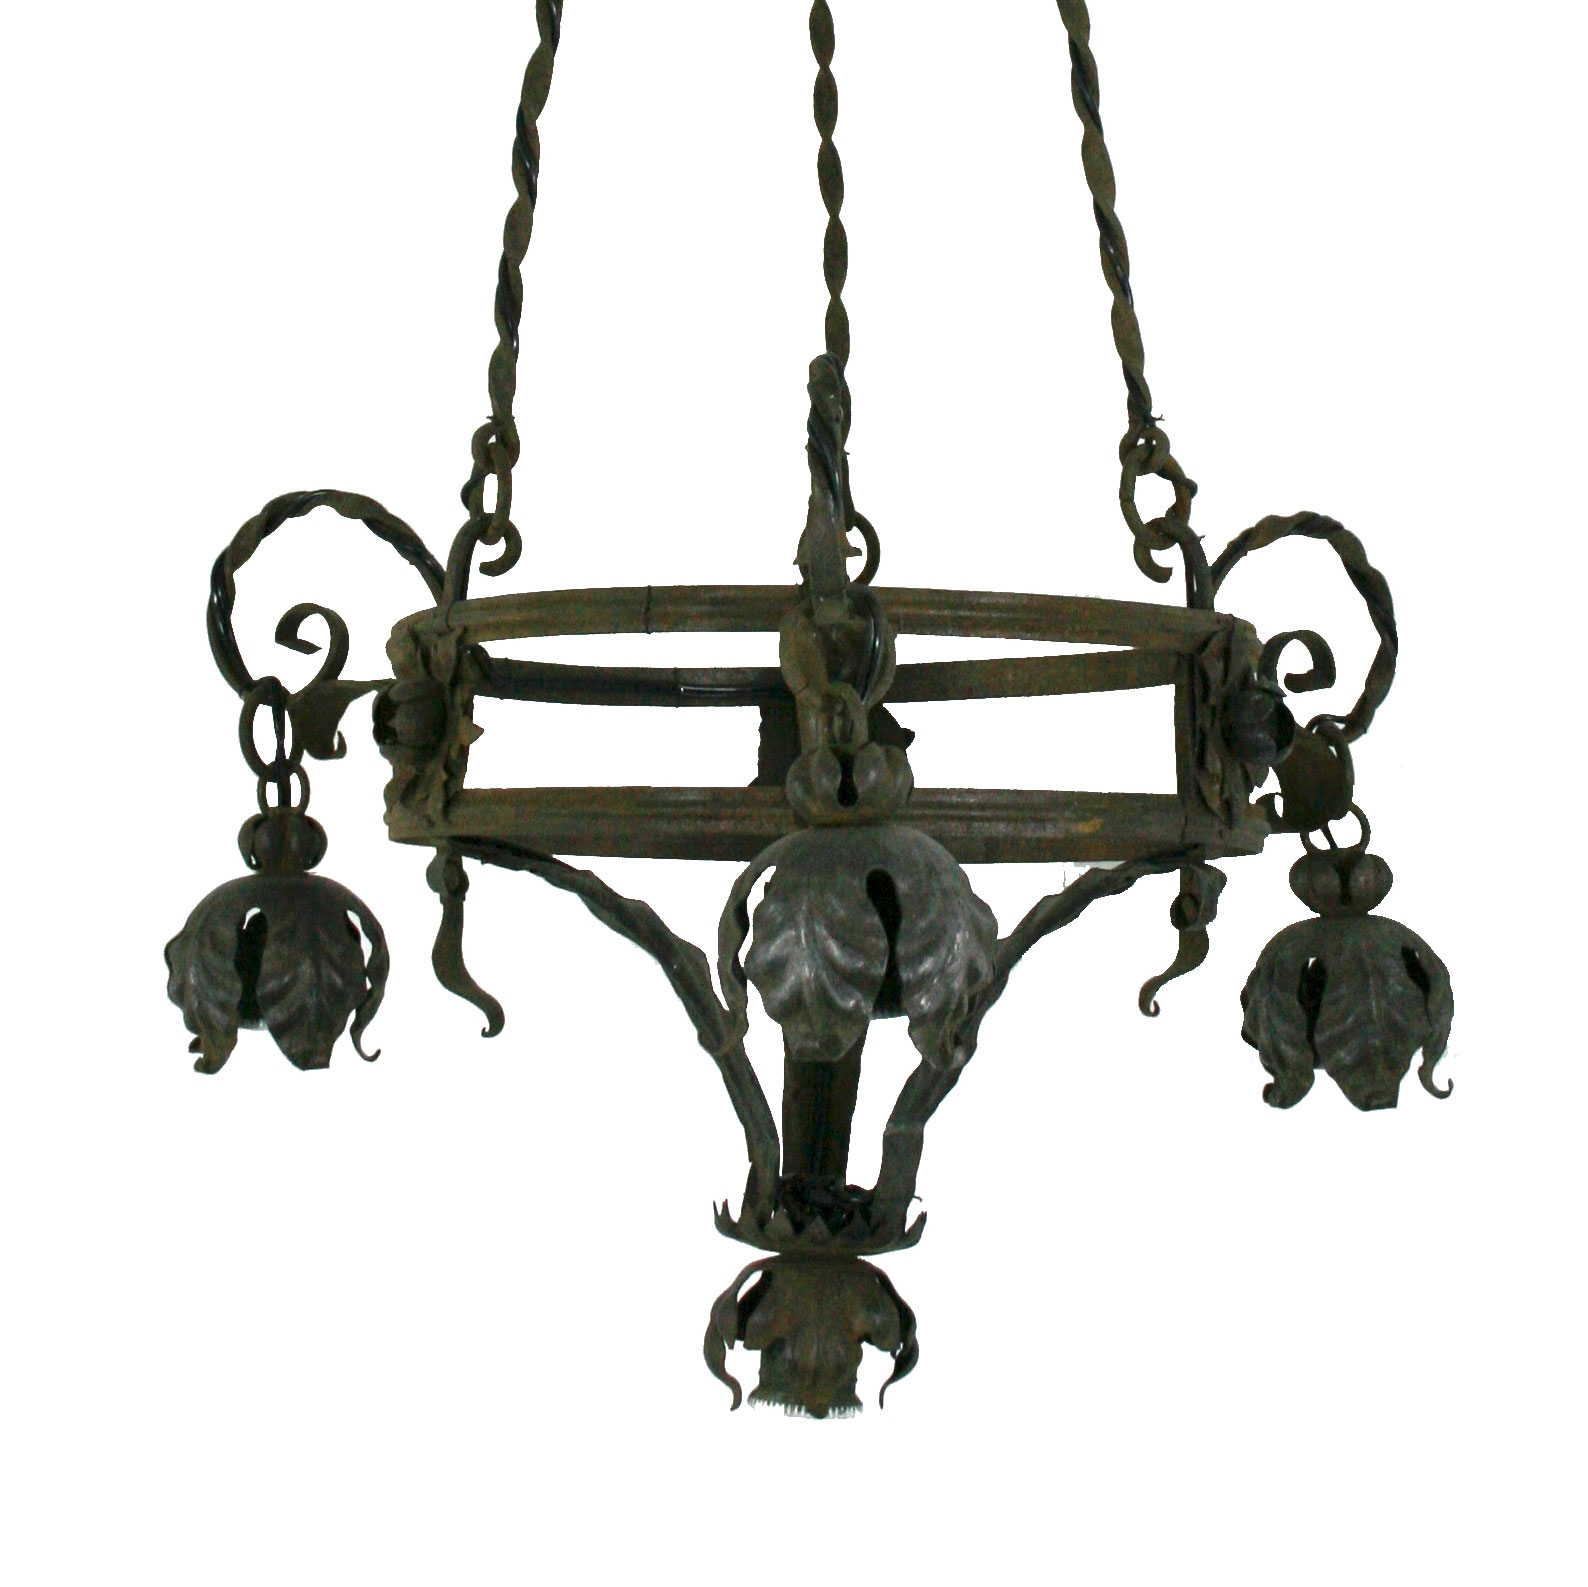 Vintage Italian Wrought Iron Chandelier Omero Home With Regard To Vintage Wrought Iron Chandelier (Image 10 of 15)